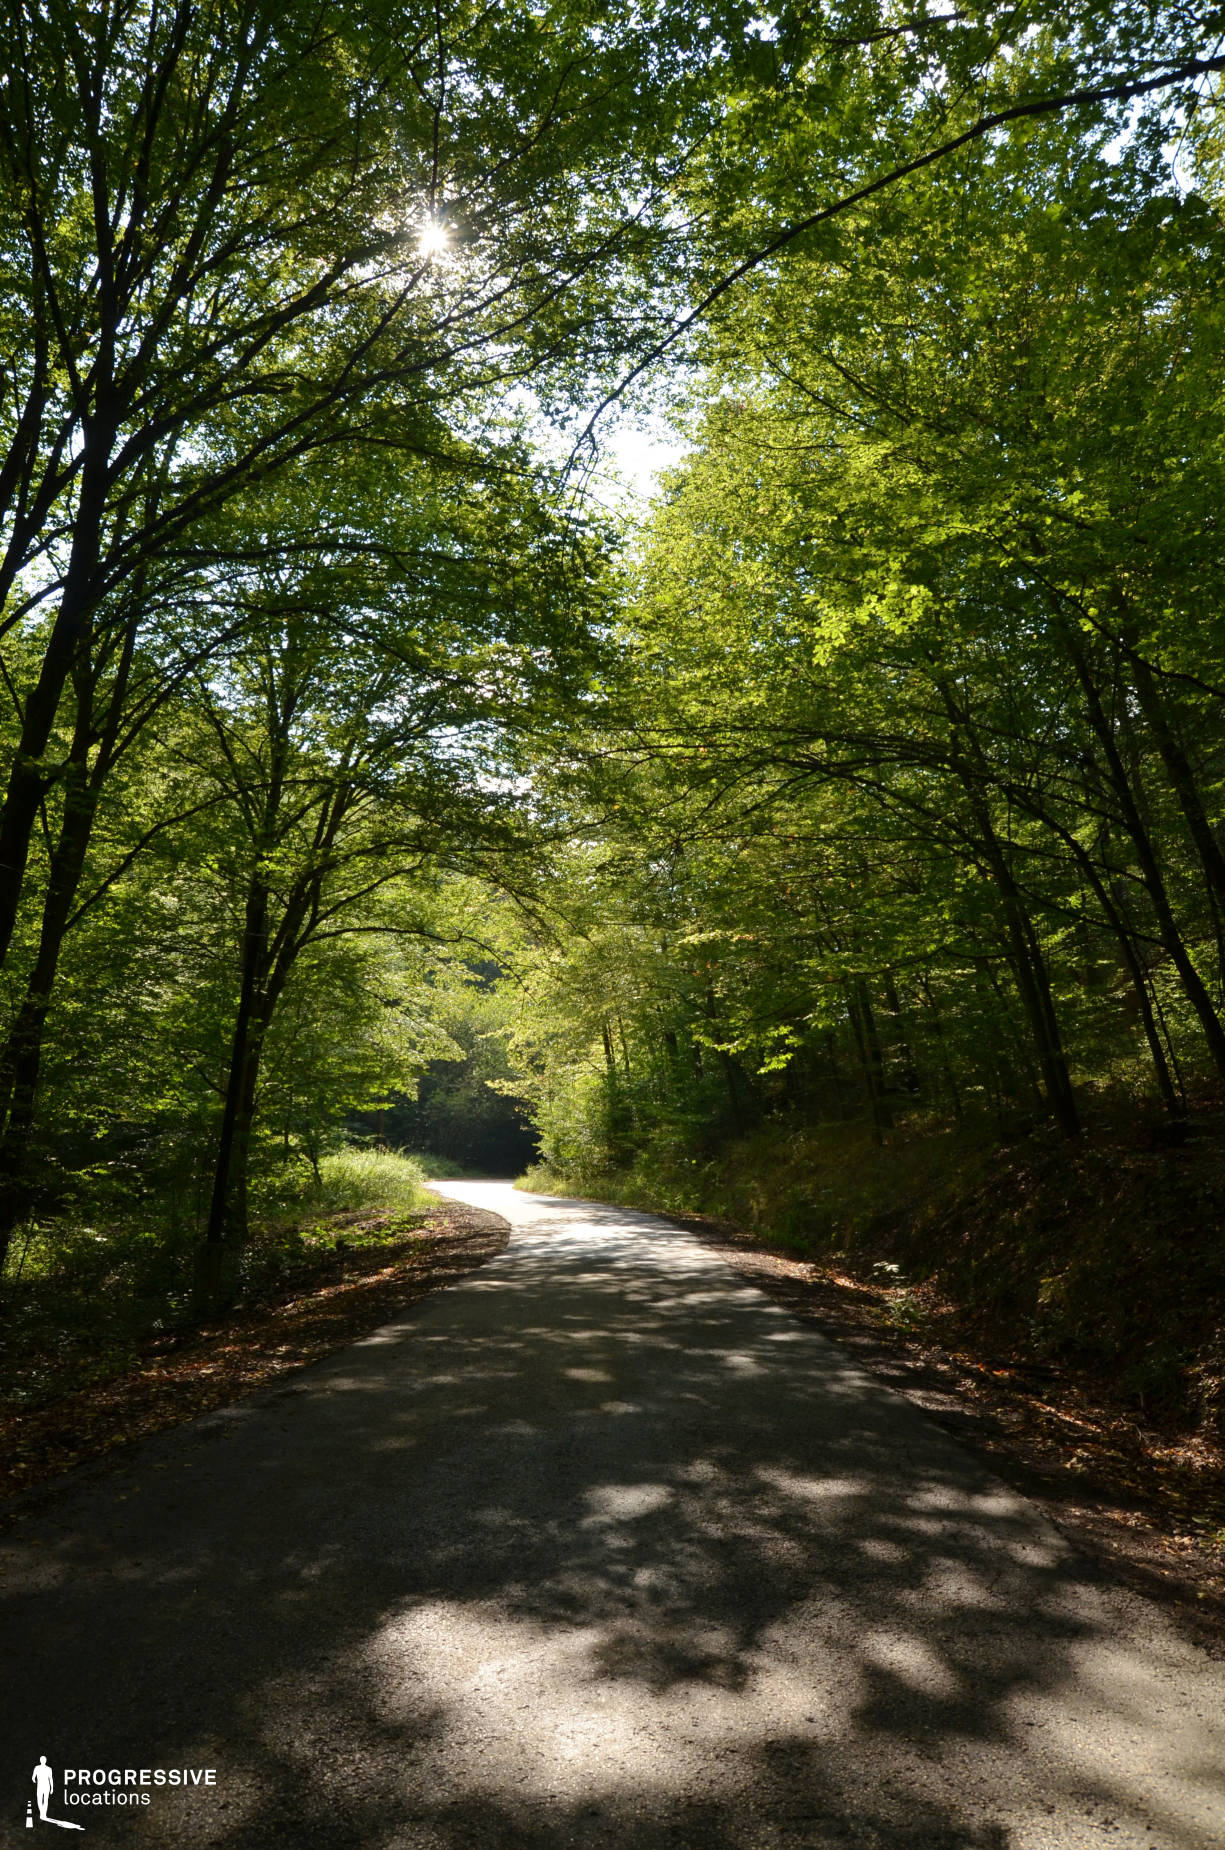 Locations in Hungary: Forest Road, Domor Kapu